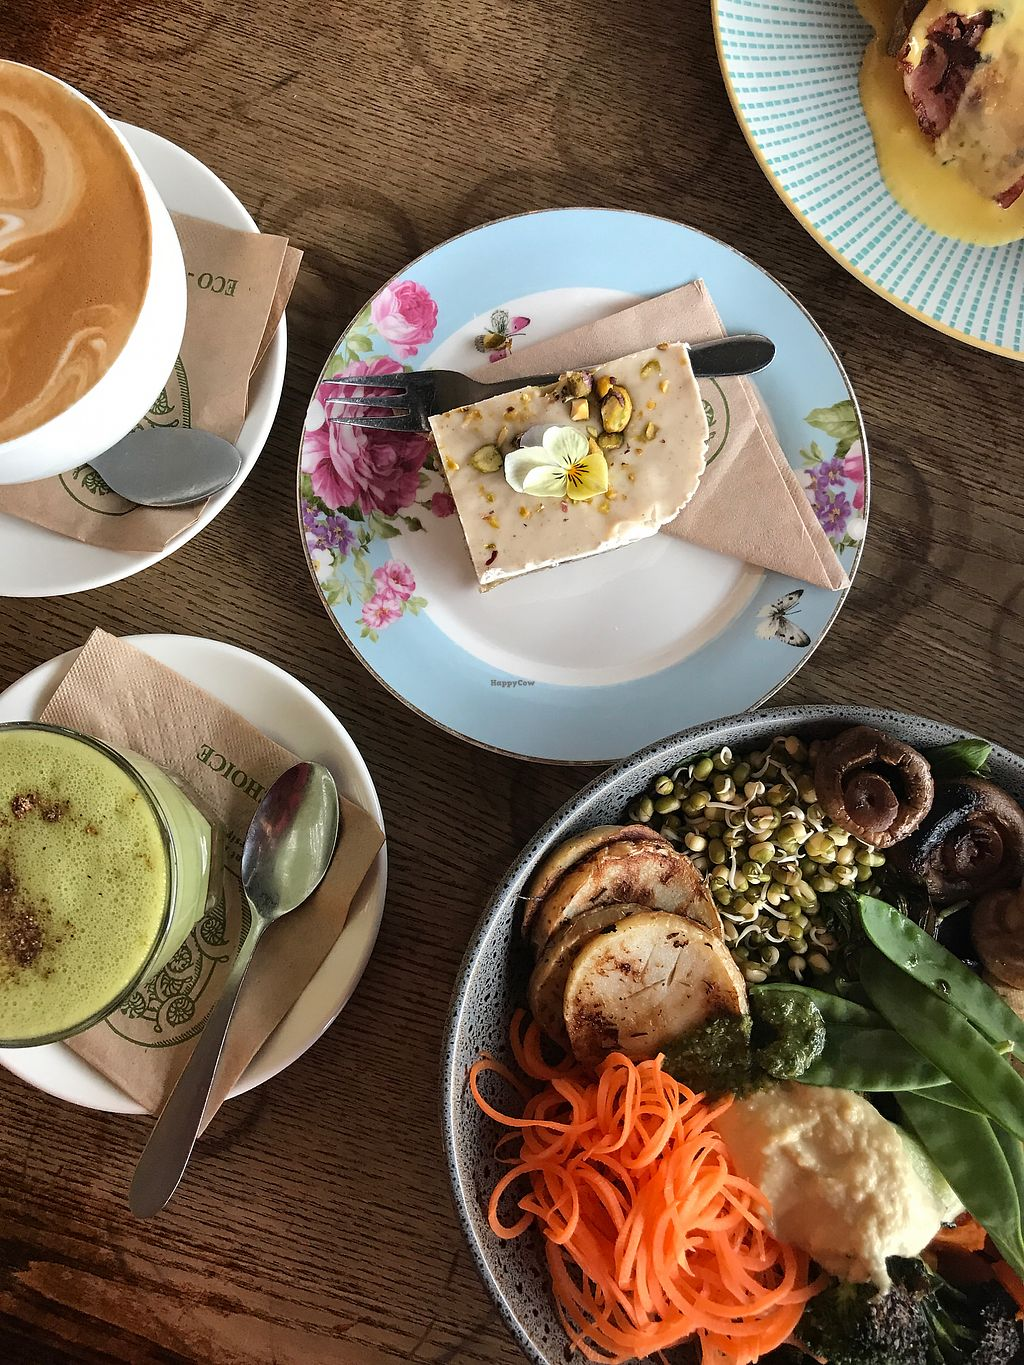 "Photo of Grindz Cafe  by <a href=""/members/profile/Binks"">Binks</a> <br/>Vegan raw slice, Buddha bowl and matcha coconut milk latte <br/> August 31, 2017  - <a href='/contact/abuse/image/82844/299305'>Report</a>"